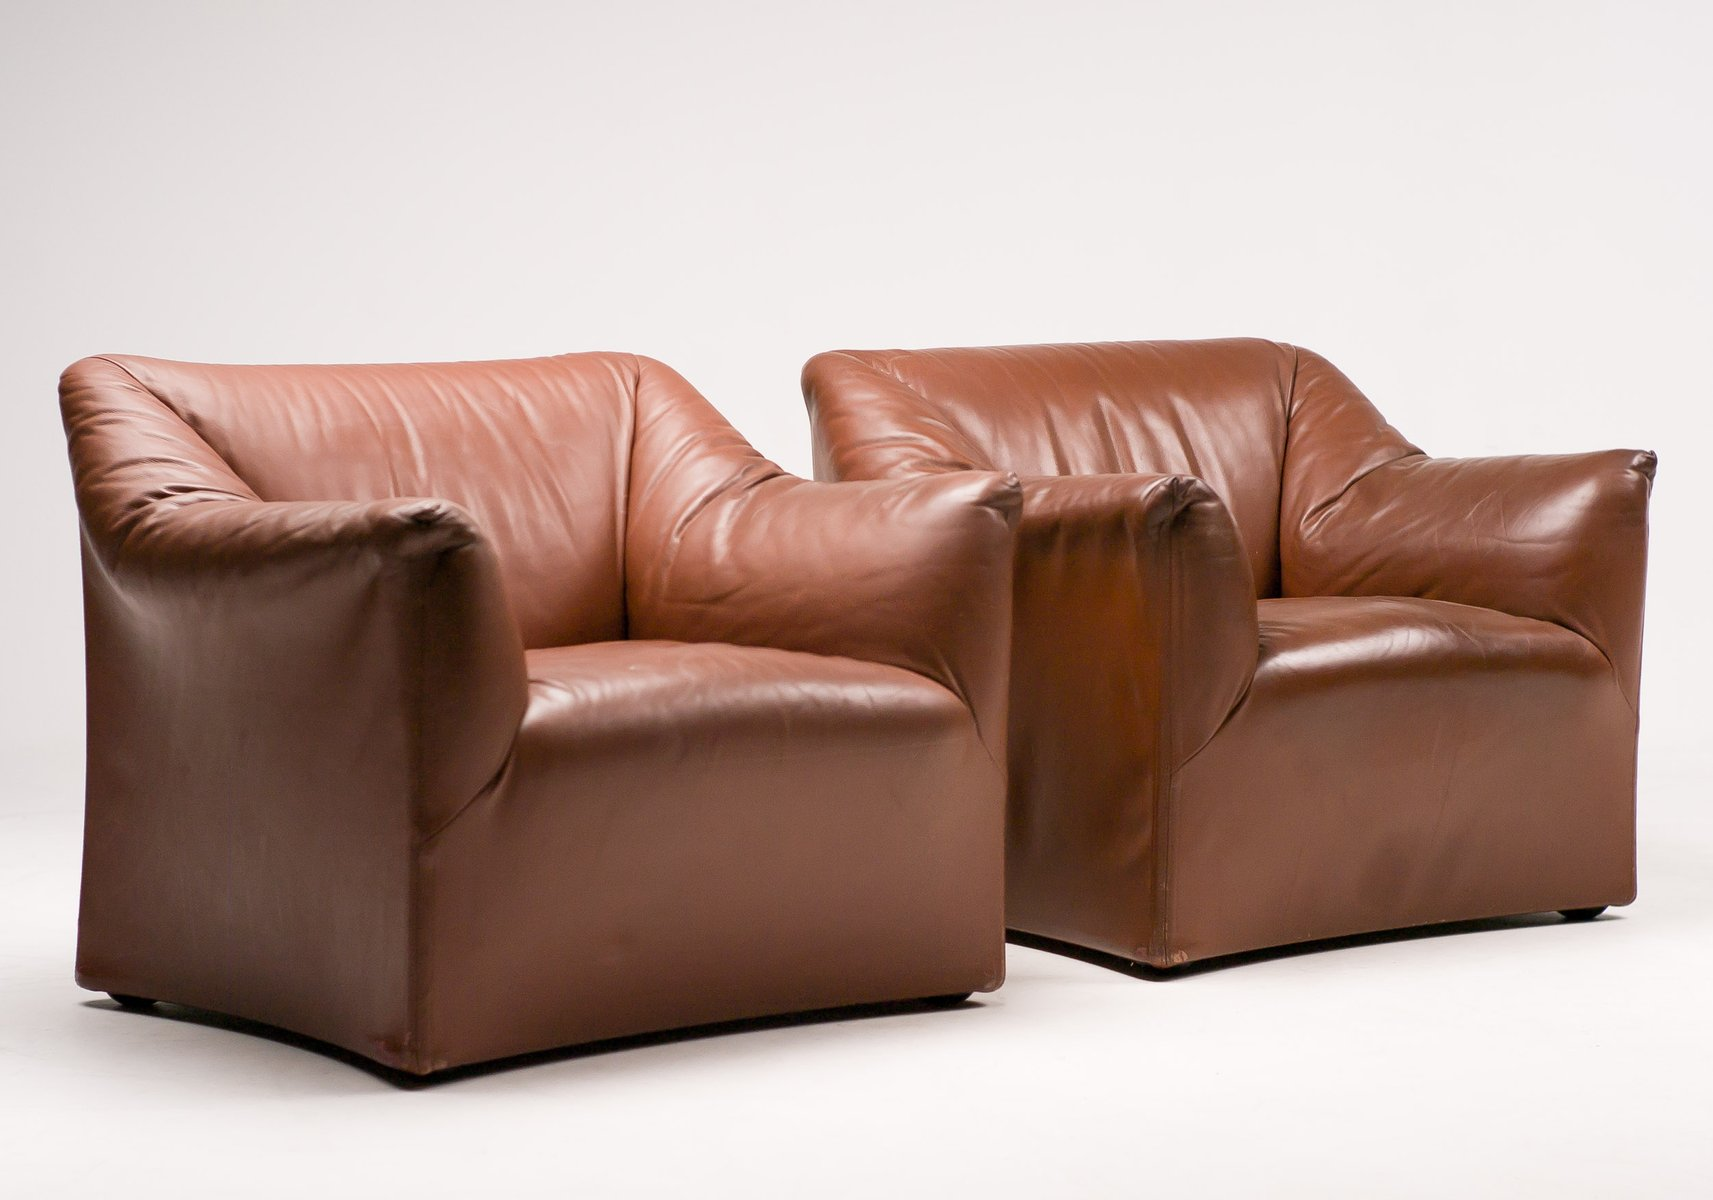 vintage leather lounge chairs by mario bellini for cassina set of